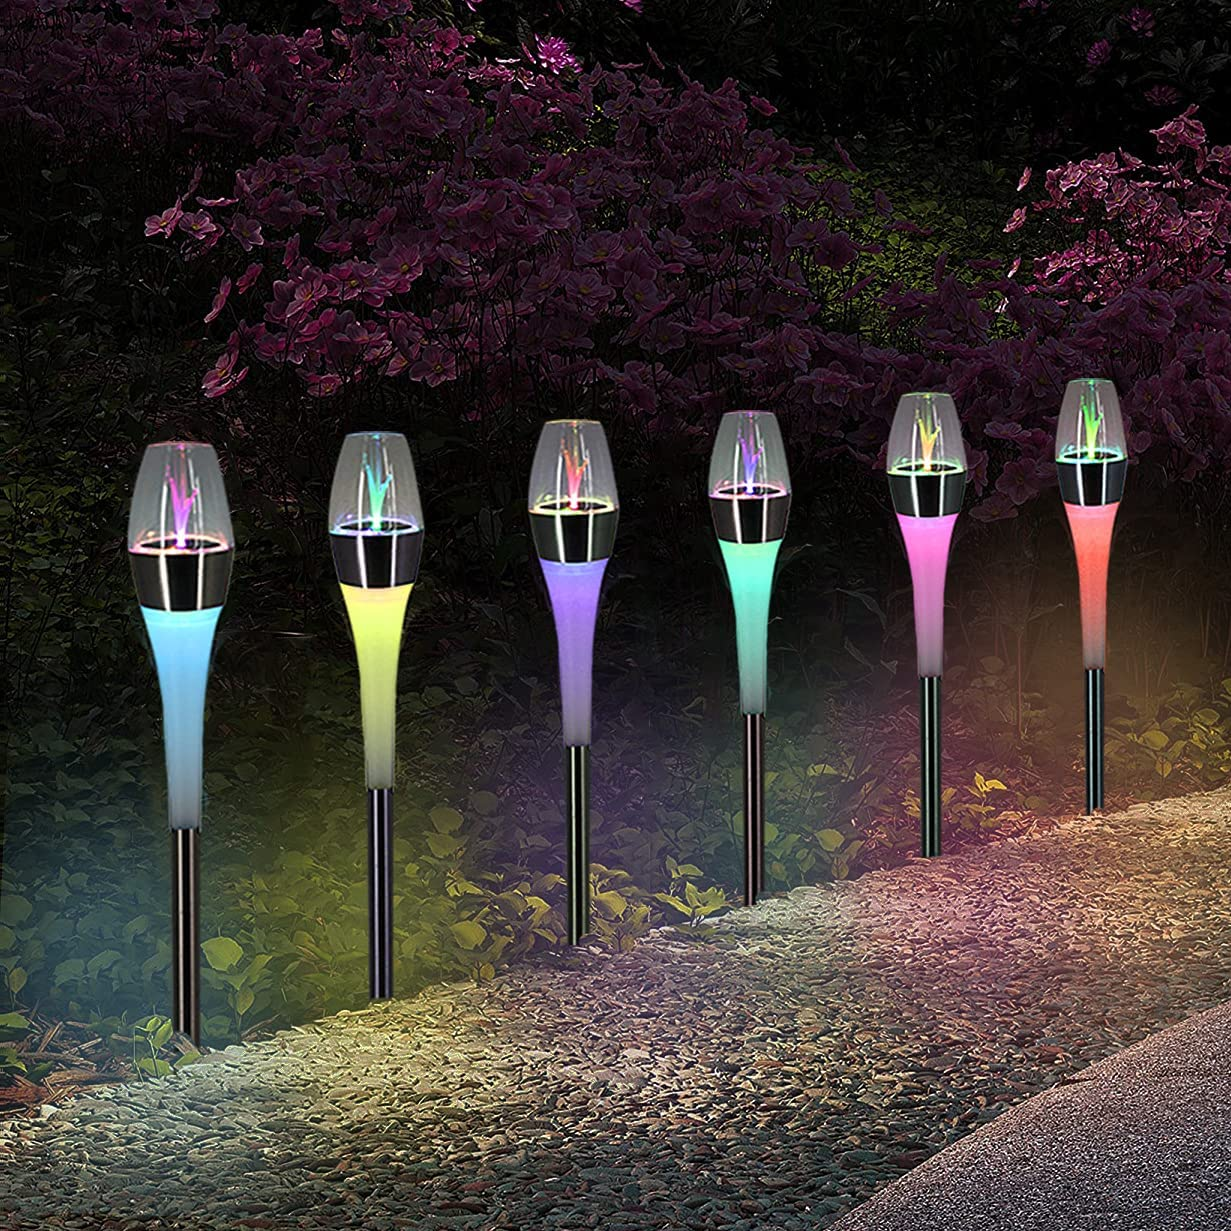 pearlstar Solar Lights Outdoor Garden Pathway with LED Color Changing Lights Waterproof for Path Lawn Patio Yard Walkway Driveway, Auto On/Off Landscape Lighting Decor, Stainless Steel&Plastic (6pack)